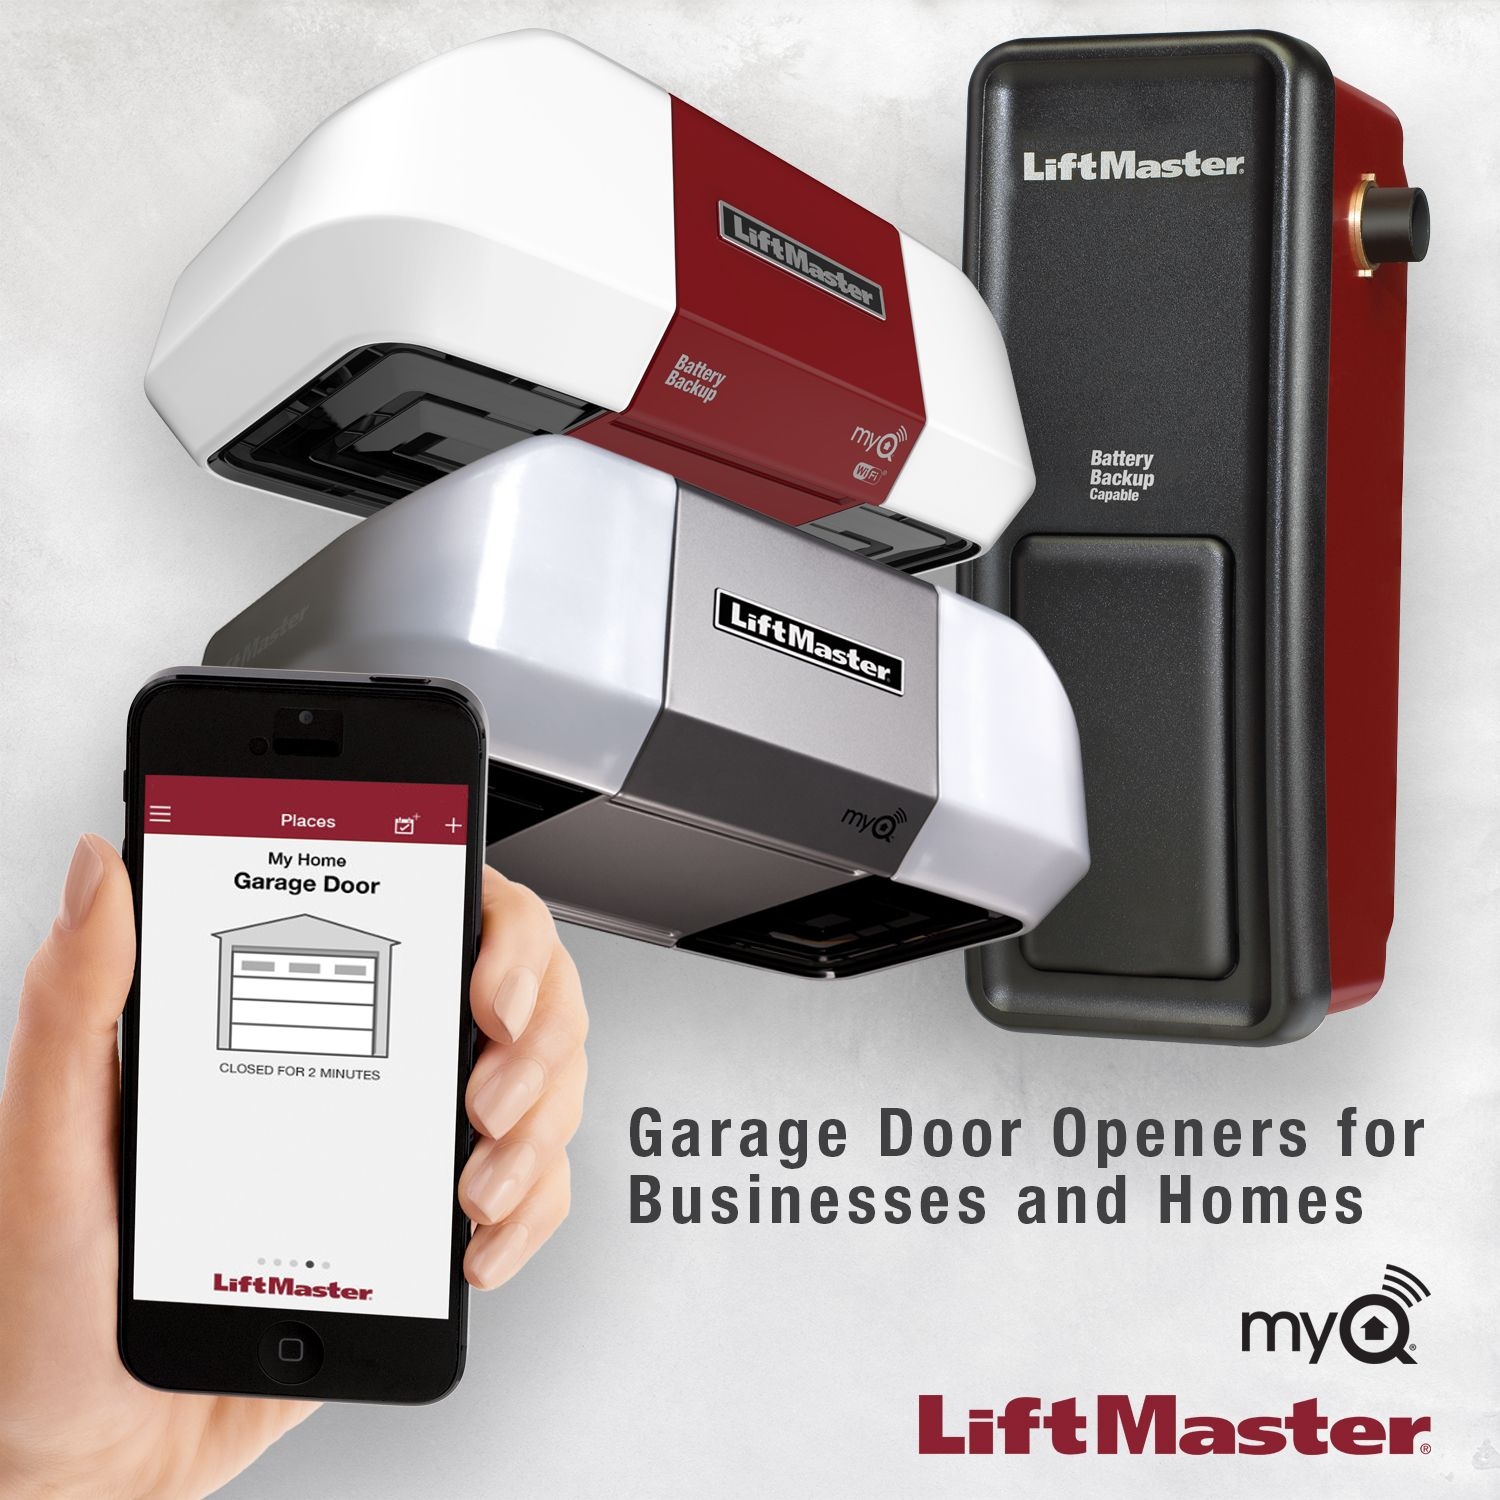 Adco Is Proud To Have Reached Provantage Status By Being Recognized As A Leader In Miami Dade Broward Liftmaster Garage Doors Liftmaster Garage Door Opener